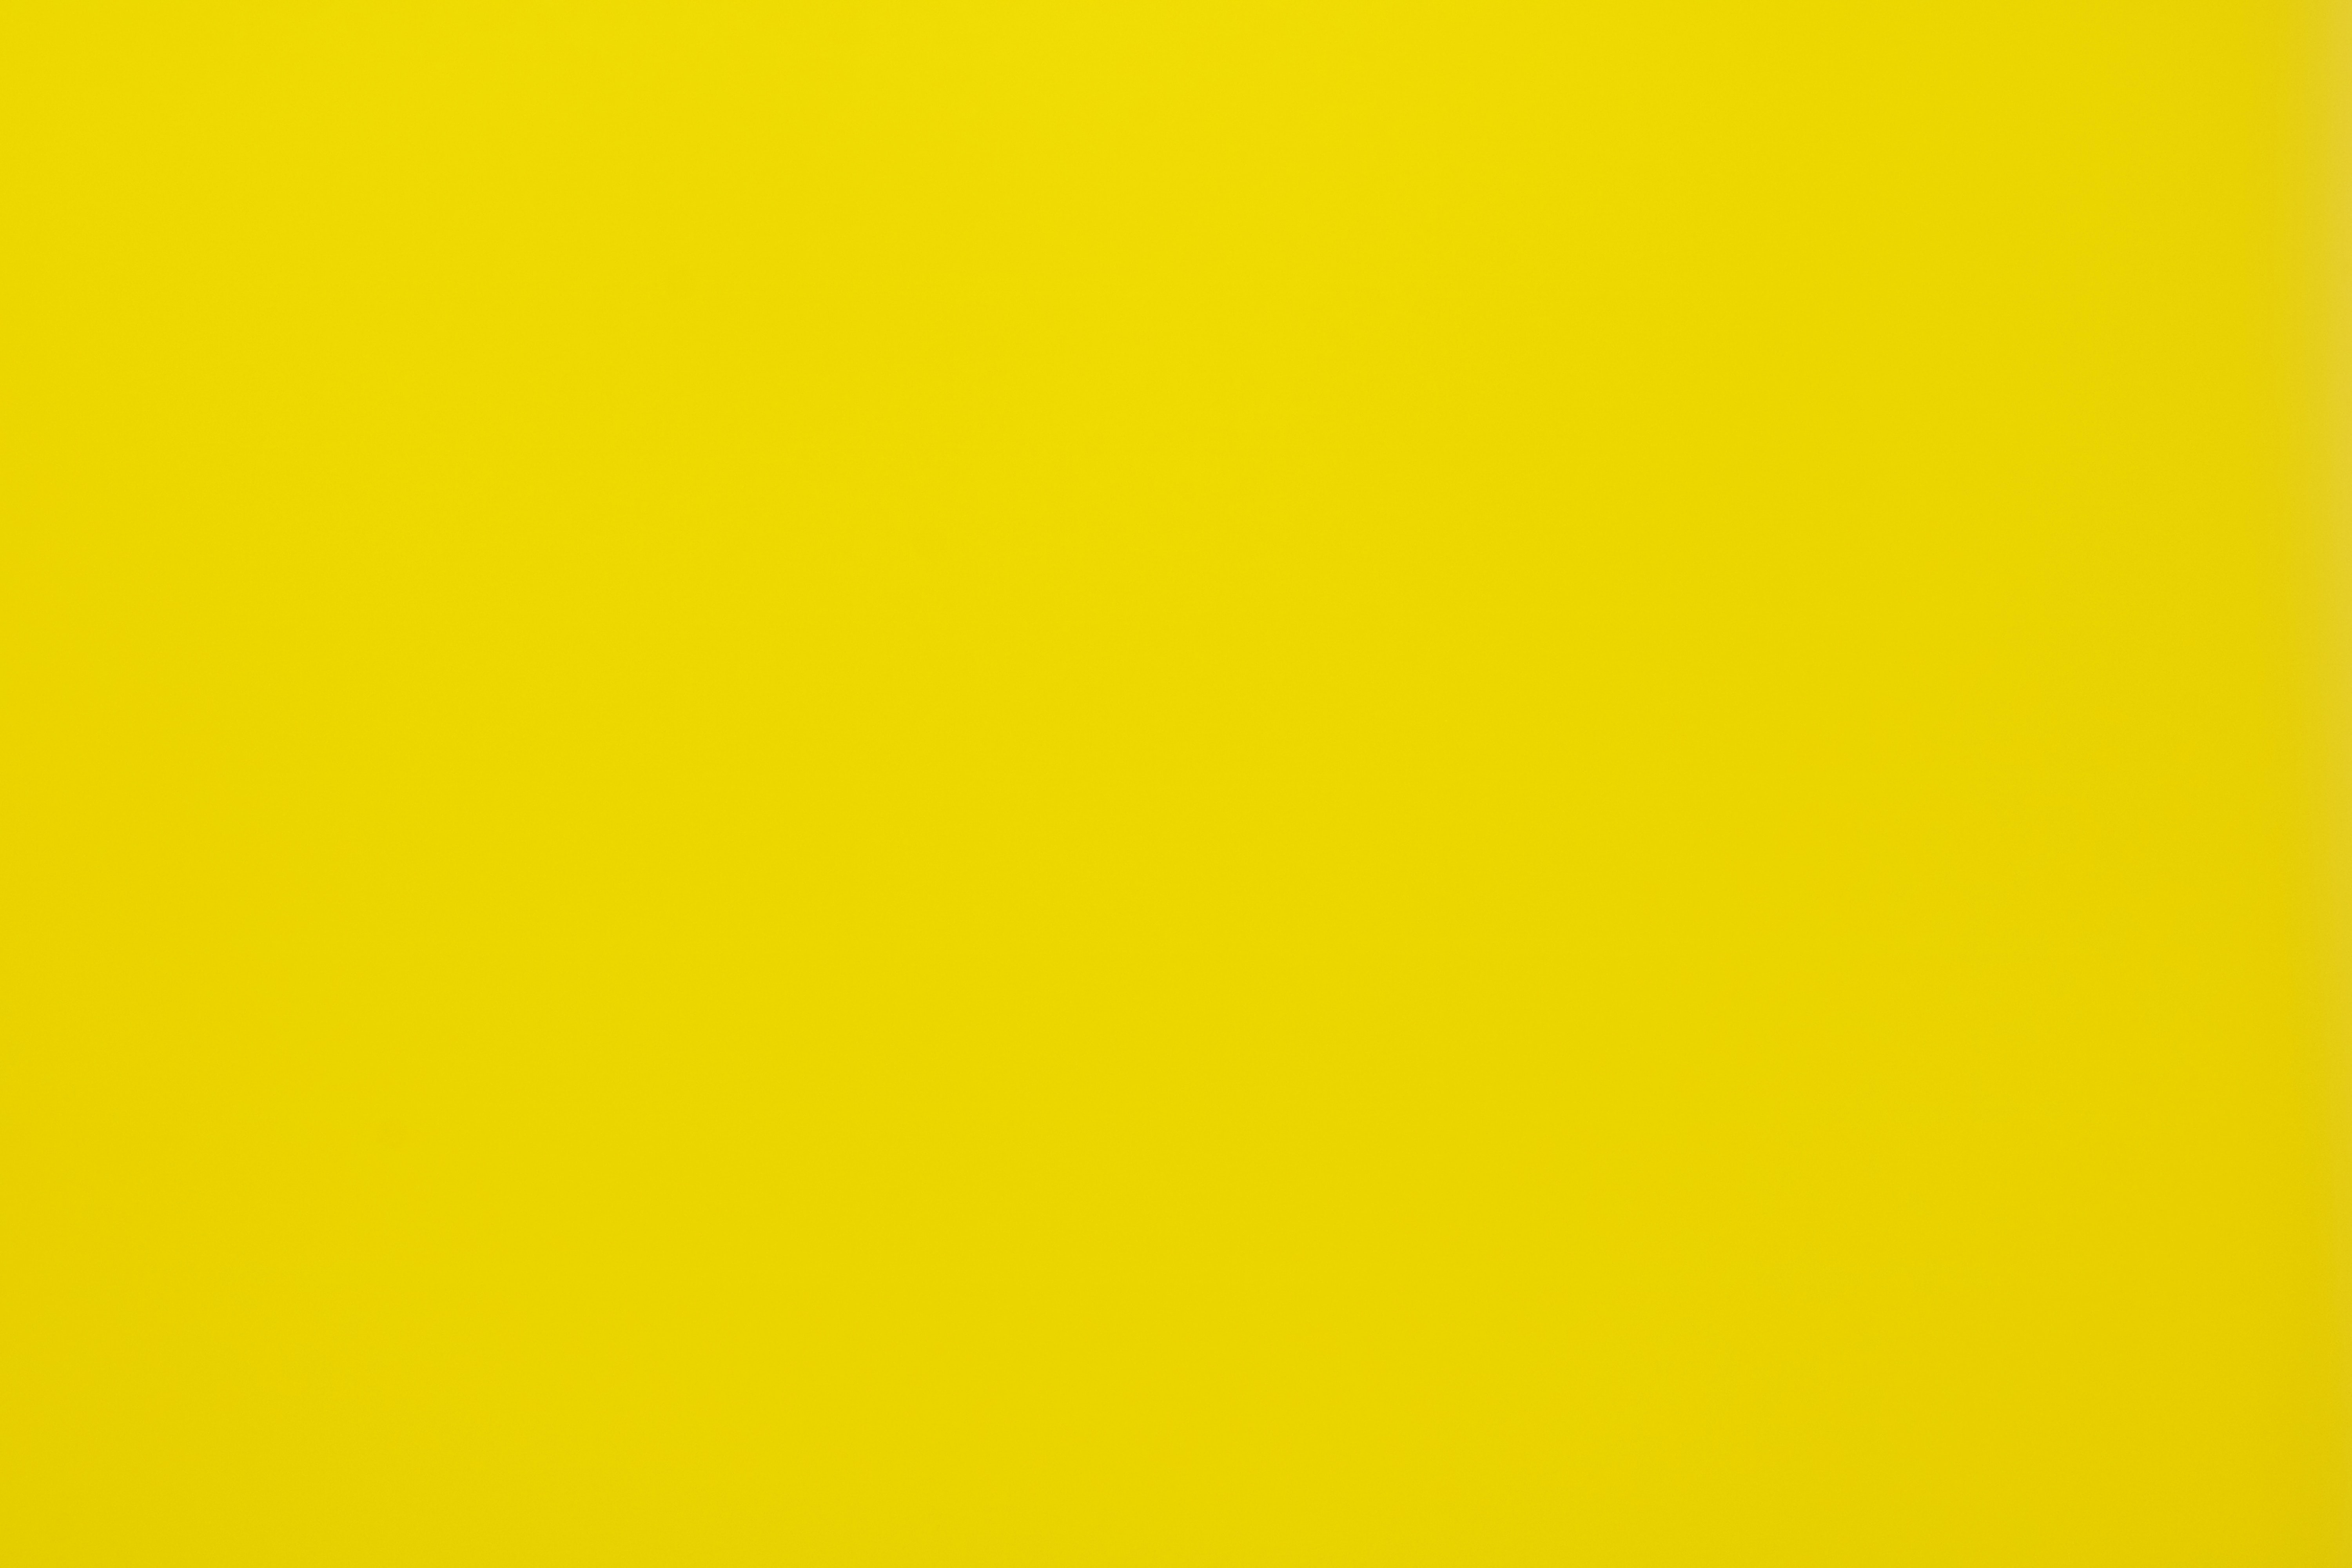 Yellow Wallpapers Free Hd Download 500 Hq Unsplash